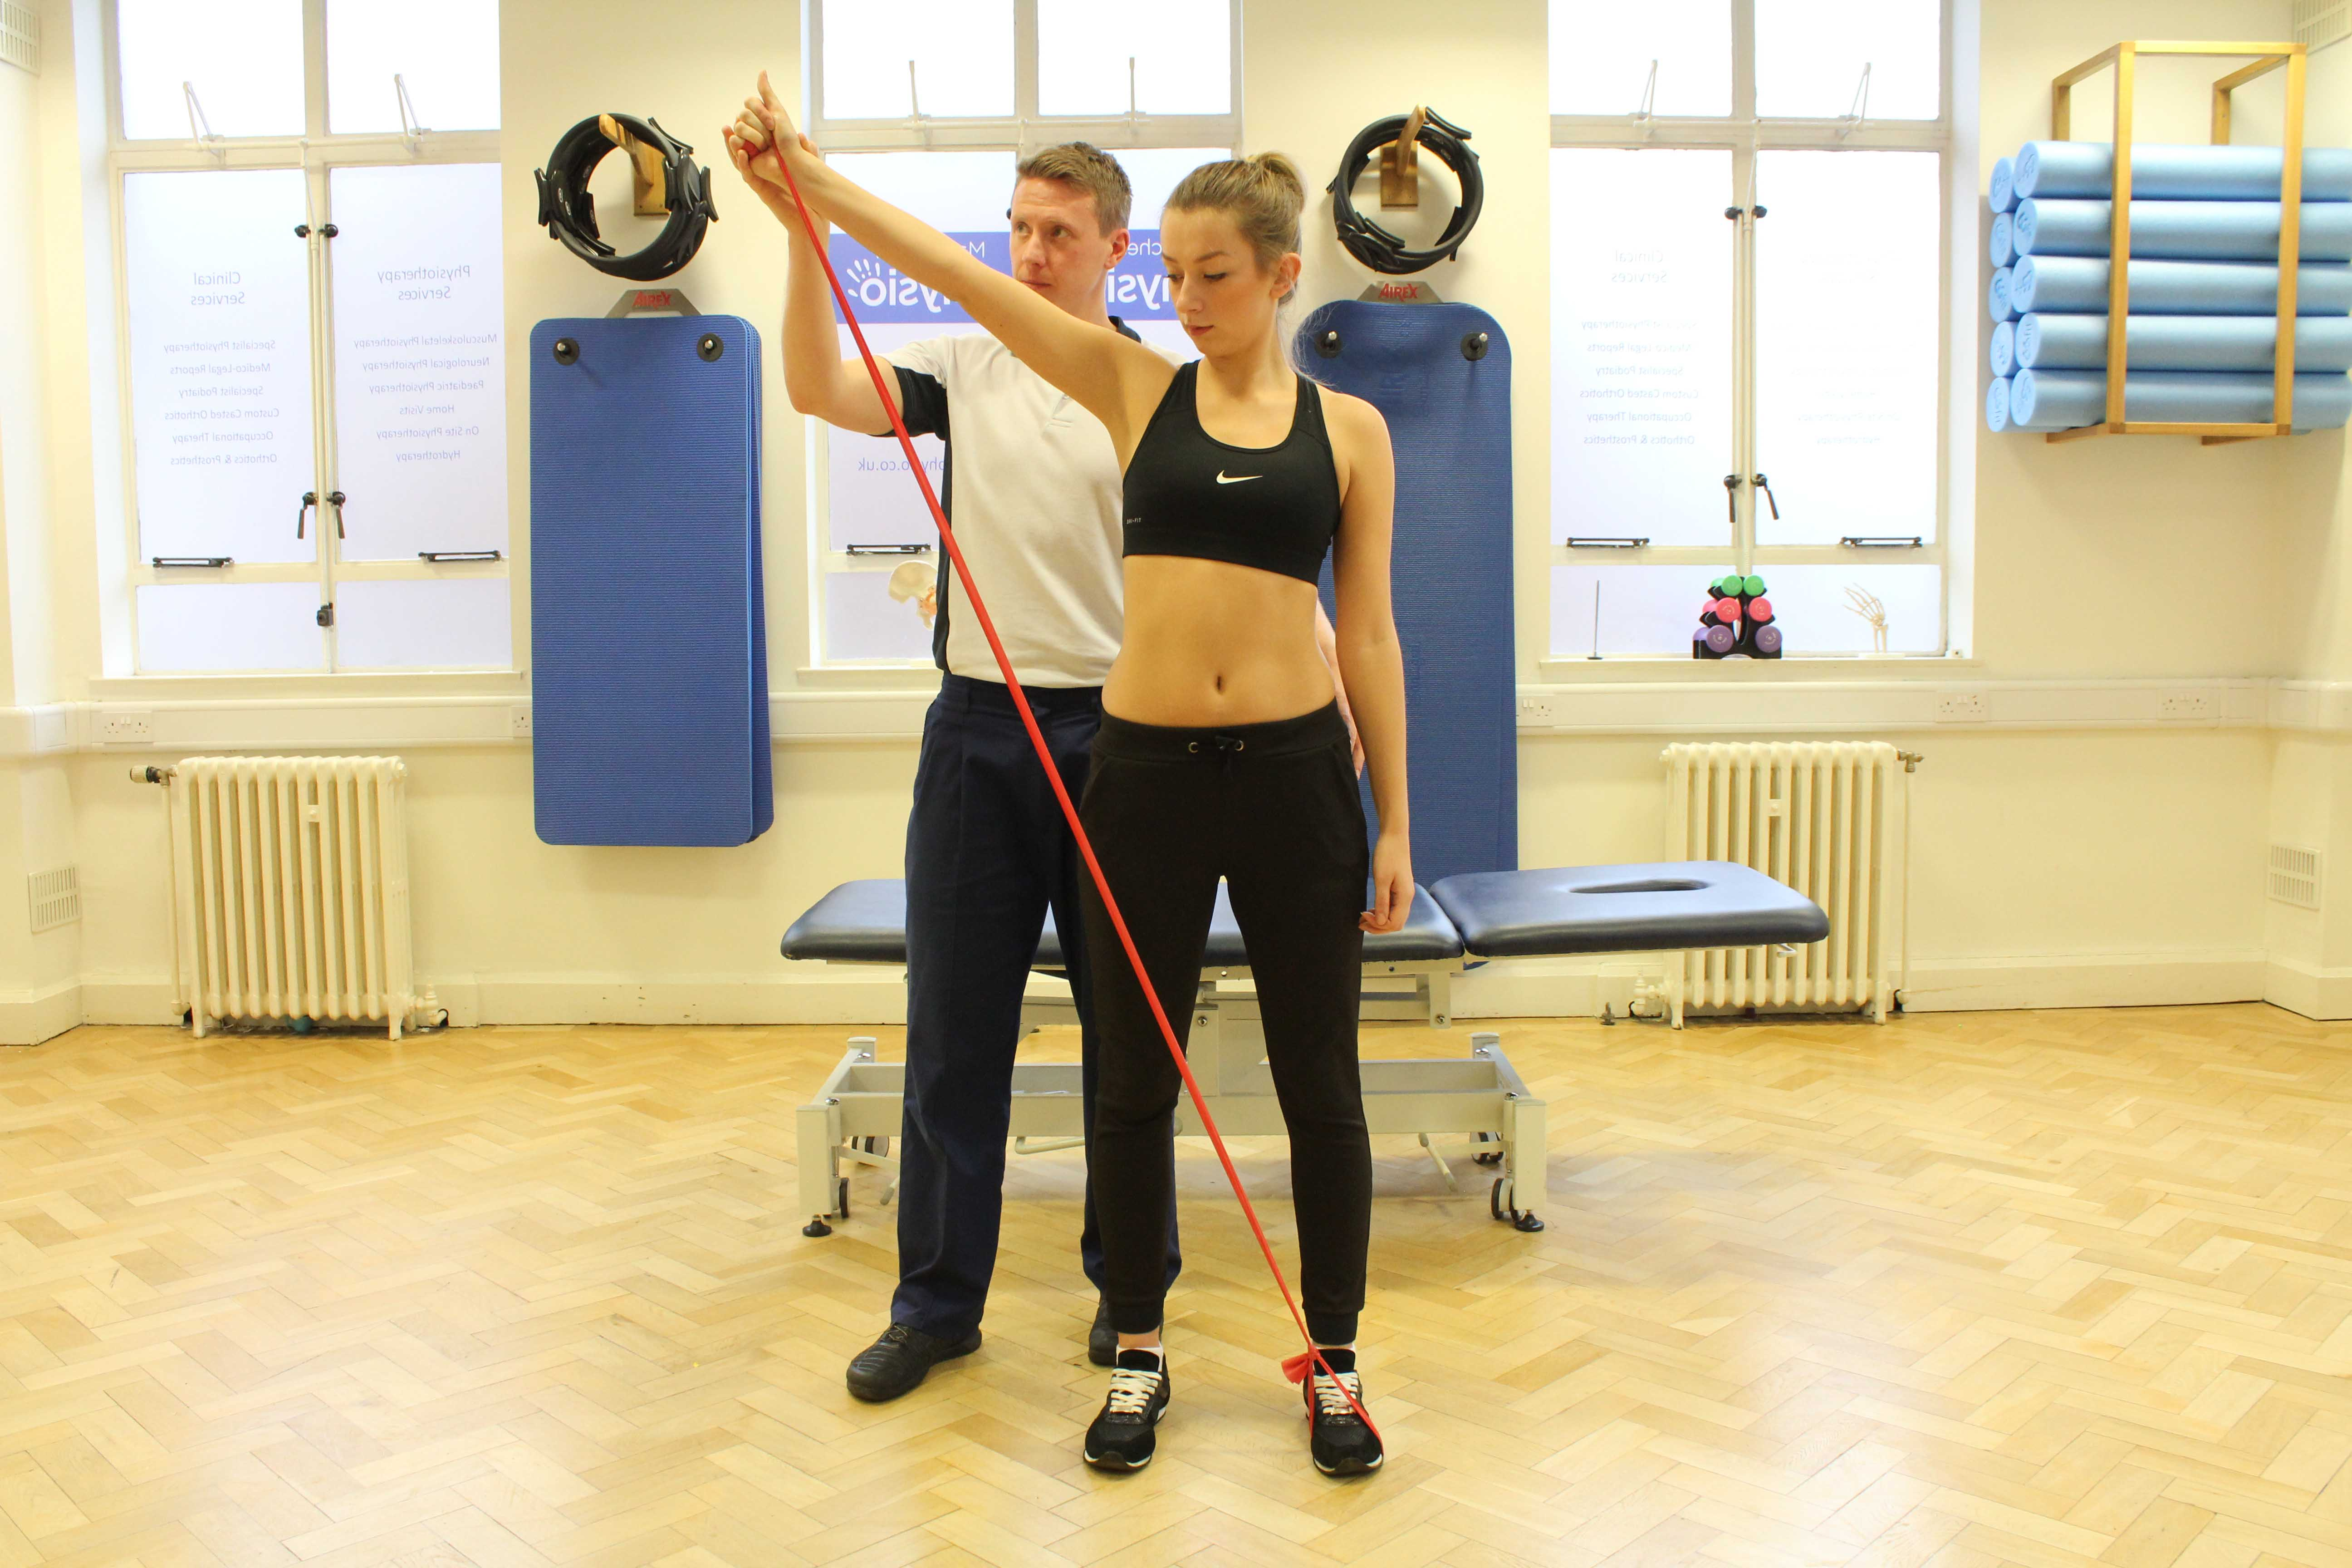 Shoulder toning exercises supervised by experienced physiotherapist